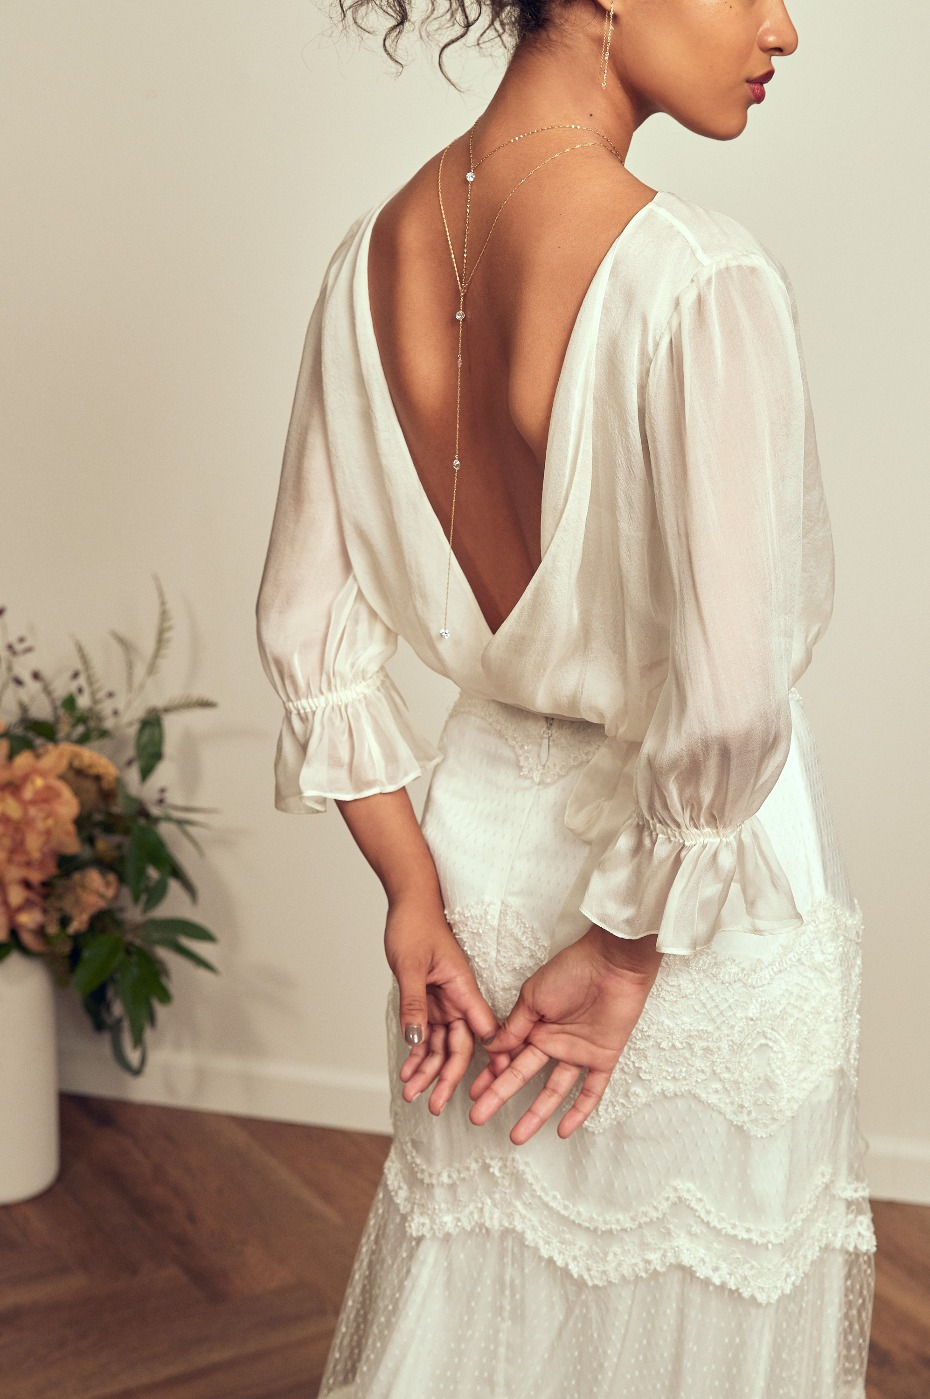 Yes, You Can Rewear Your Wedding Gown and Make It Look Good